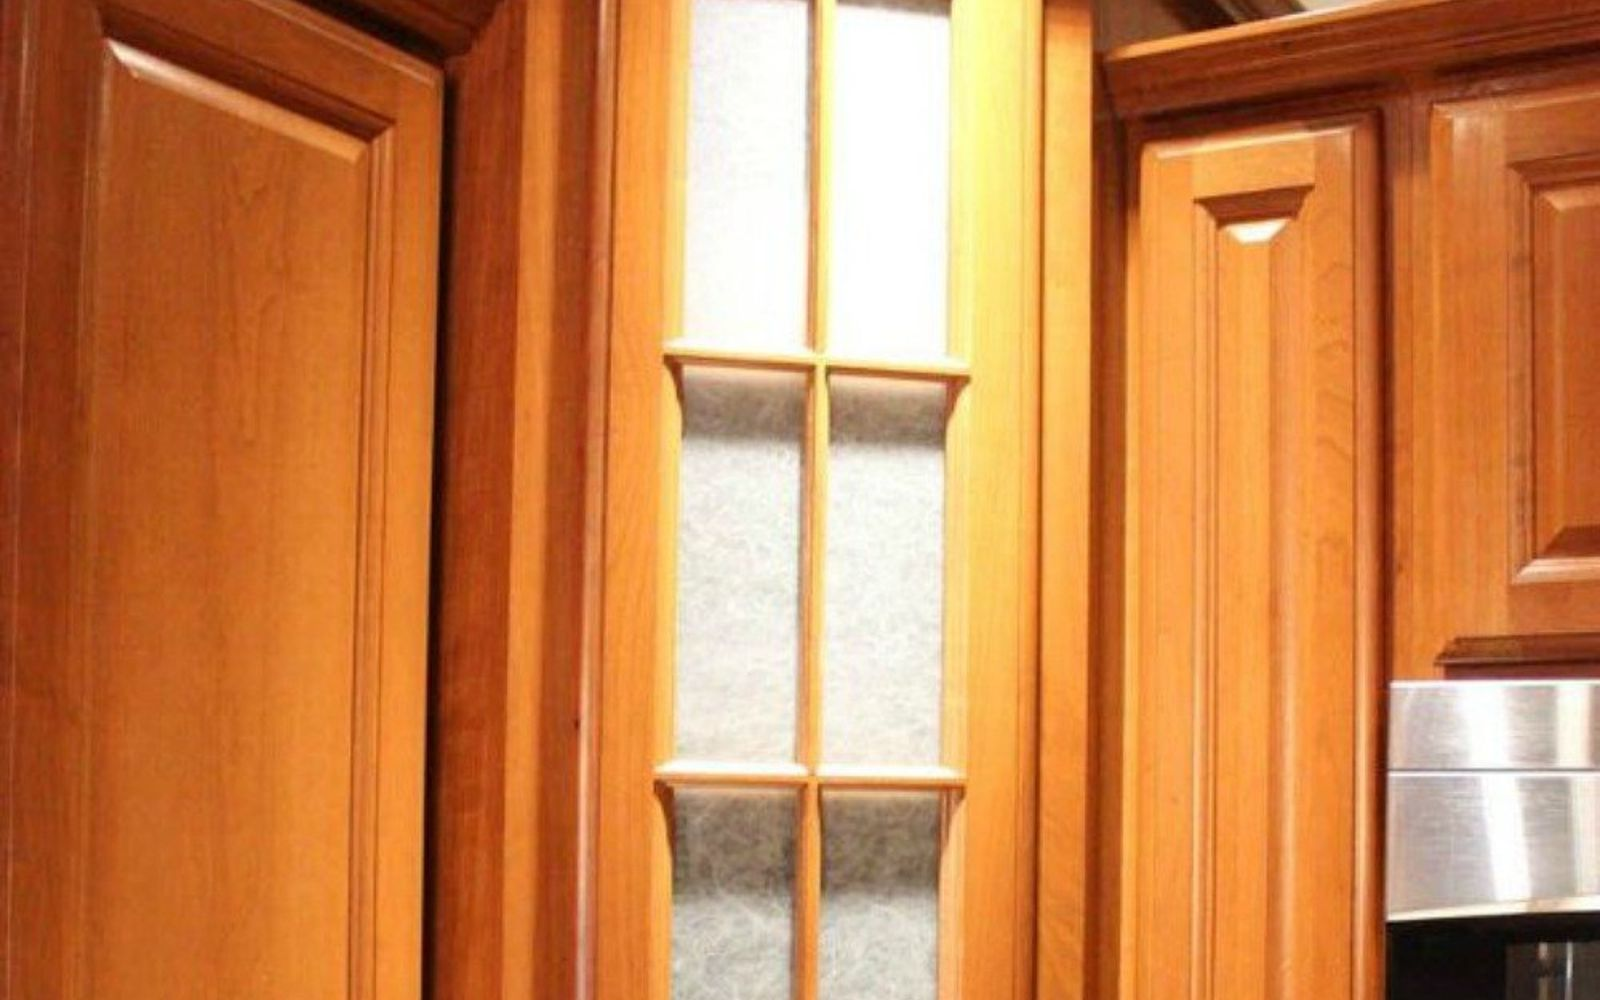 Kitchen Cabinets With Curtains Instead Of Doors: How To Get Privacy Without Curtains